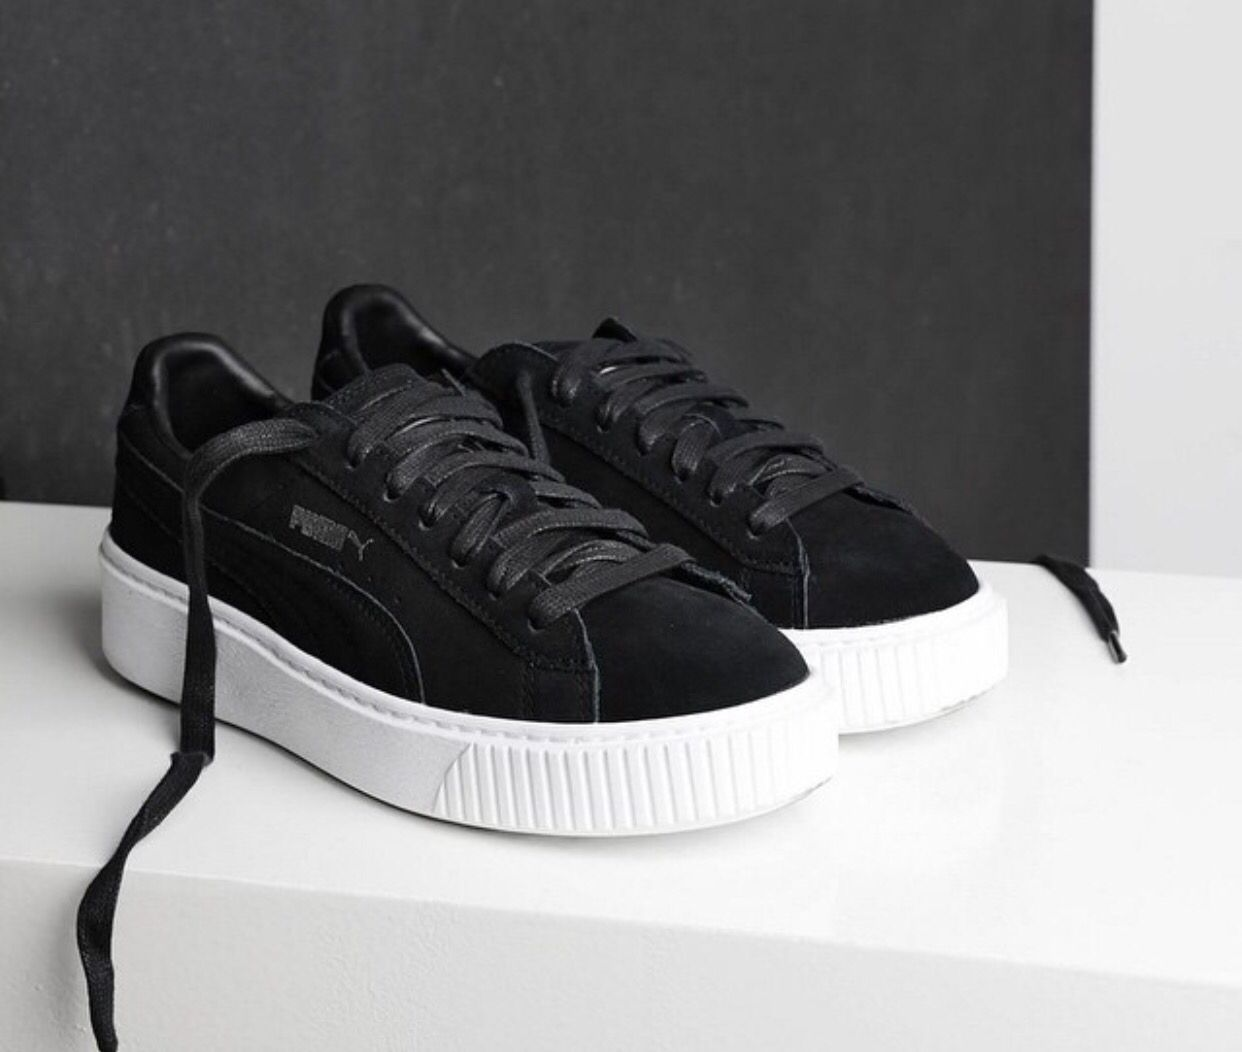 Suede Shoes Pinterest Platform And Sneakers Puma zwq0717